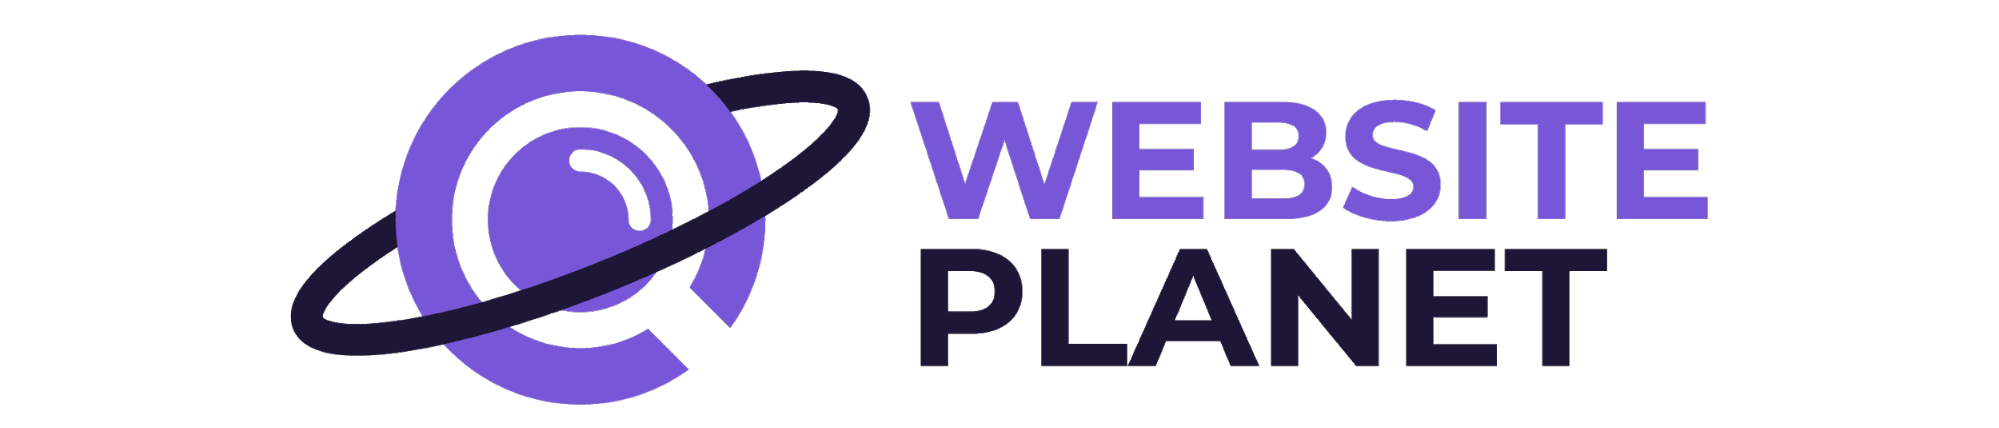 Website Planet logo from Fiverr - $5